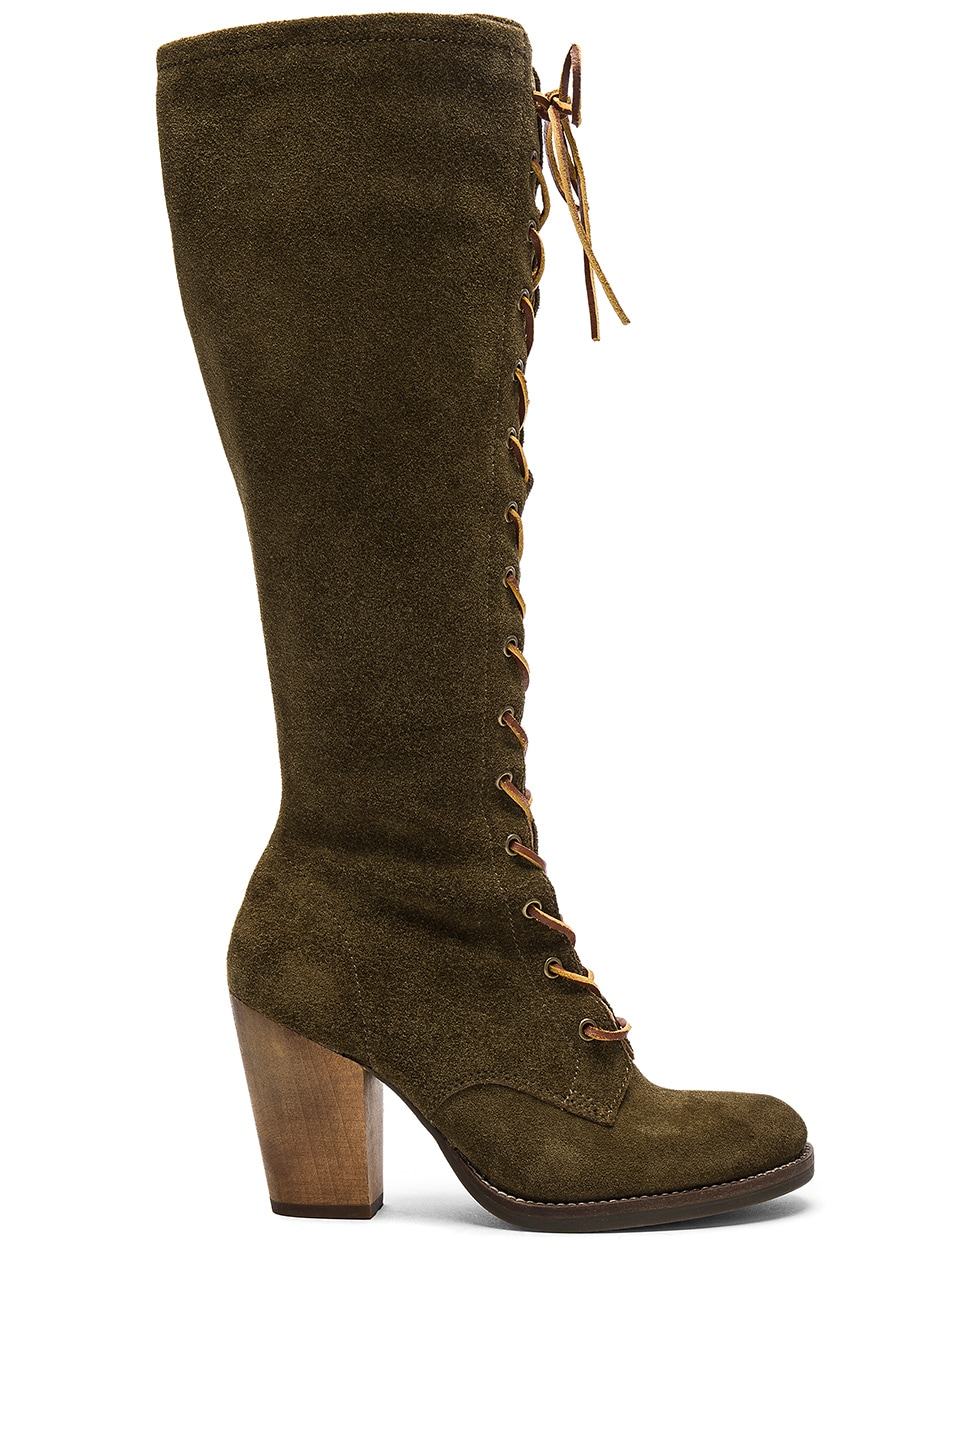 Ferderica Boots by Latigo